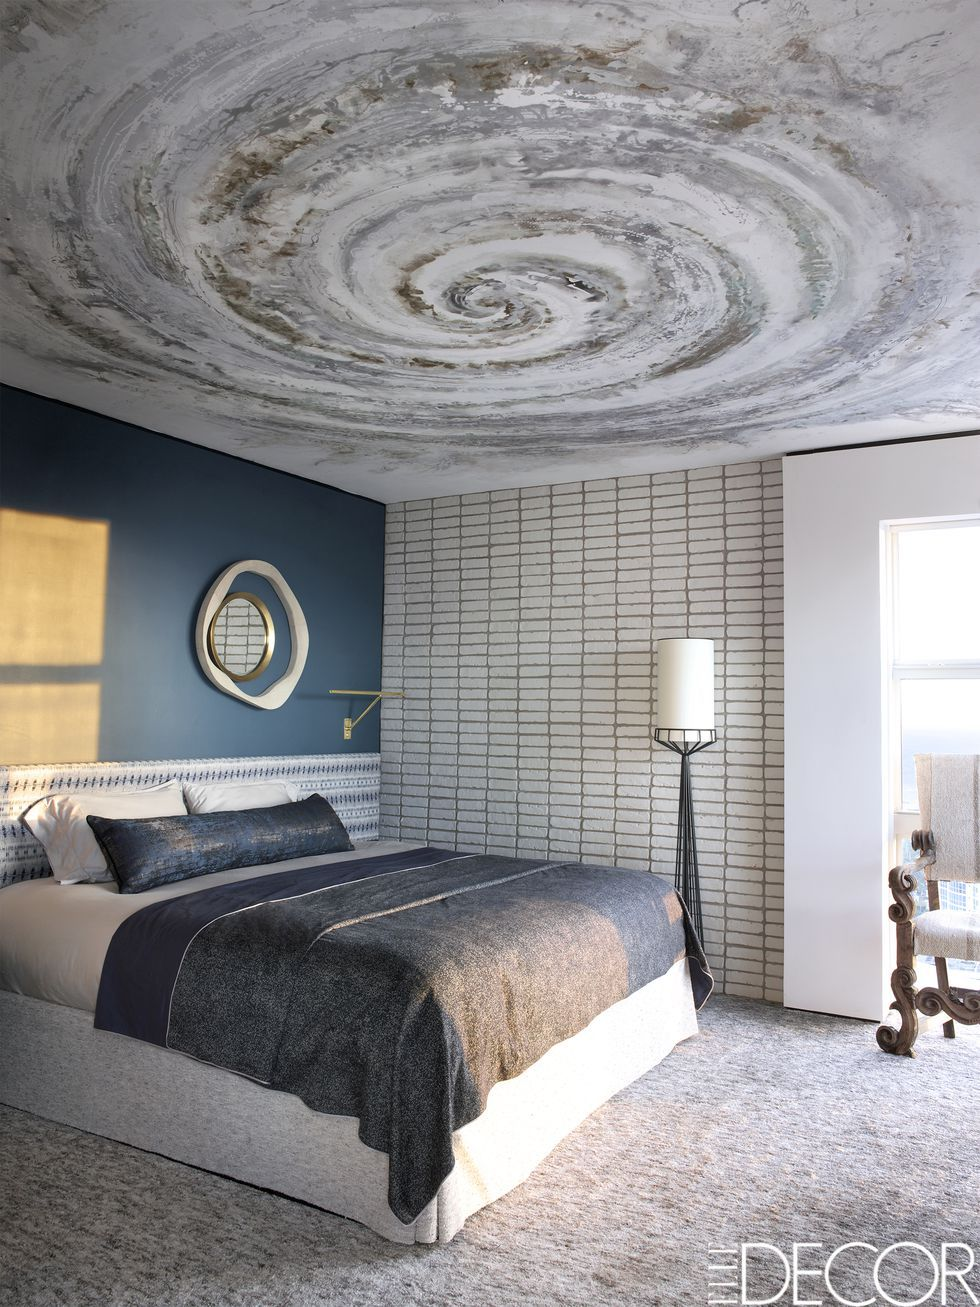 If you want to up the drama, try a real metal tile in bronze or copper. 15 Bedrooms With Statement Ceilings Stunning Ceiling Designs